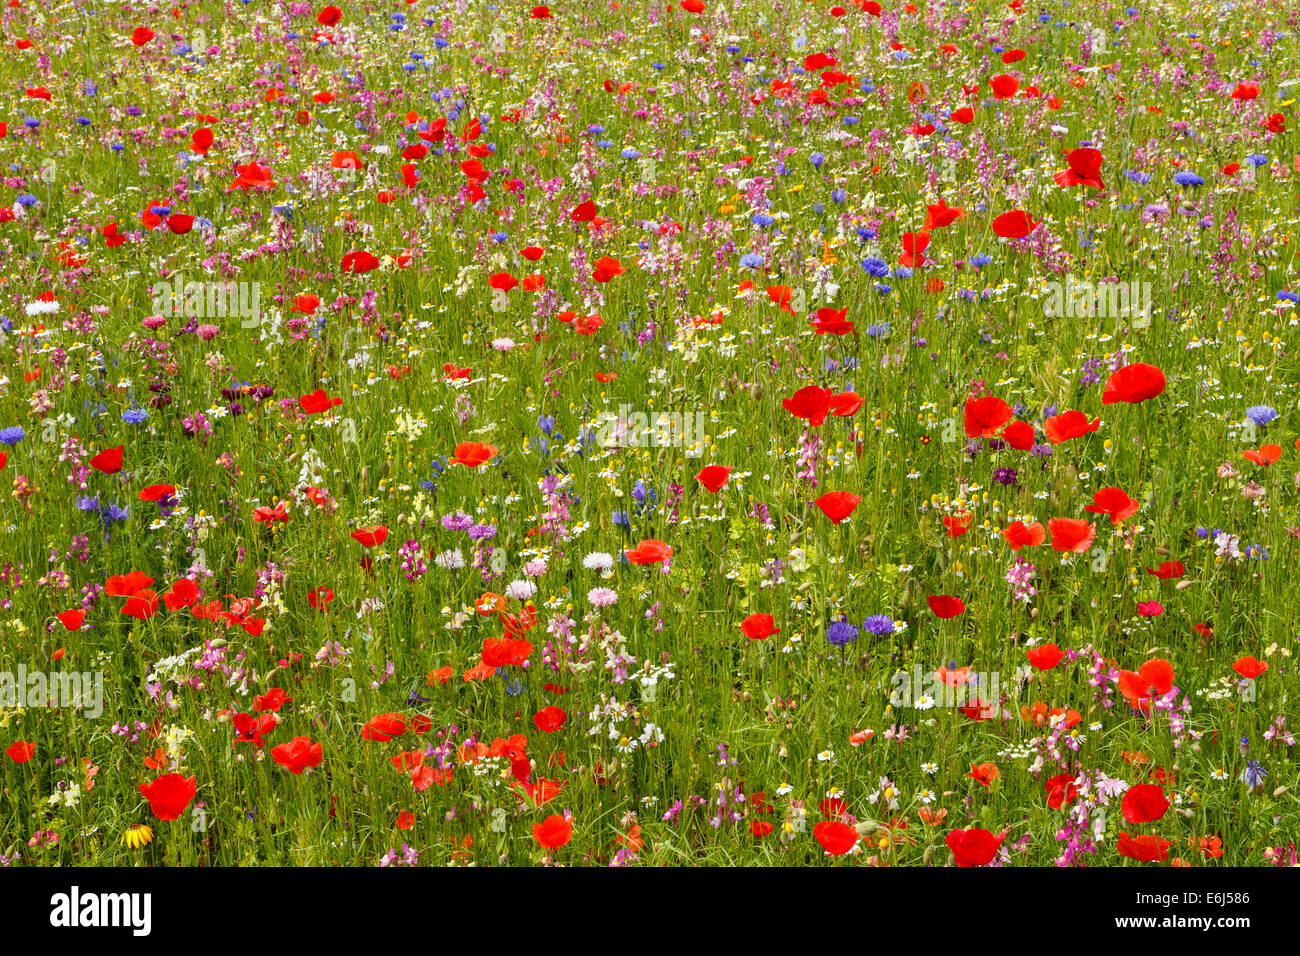 Wildflower meadow in full bloom with many poppies. - Stock Image